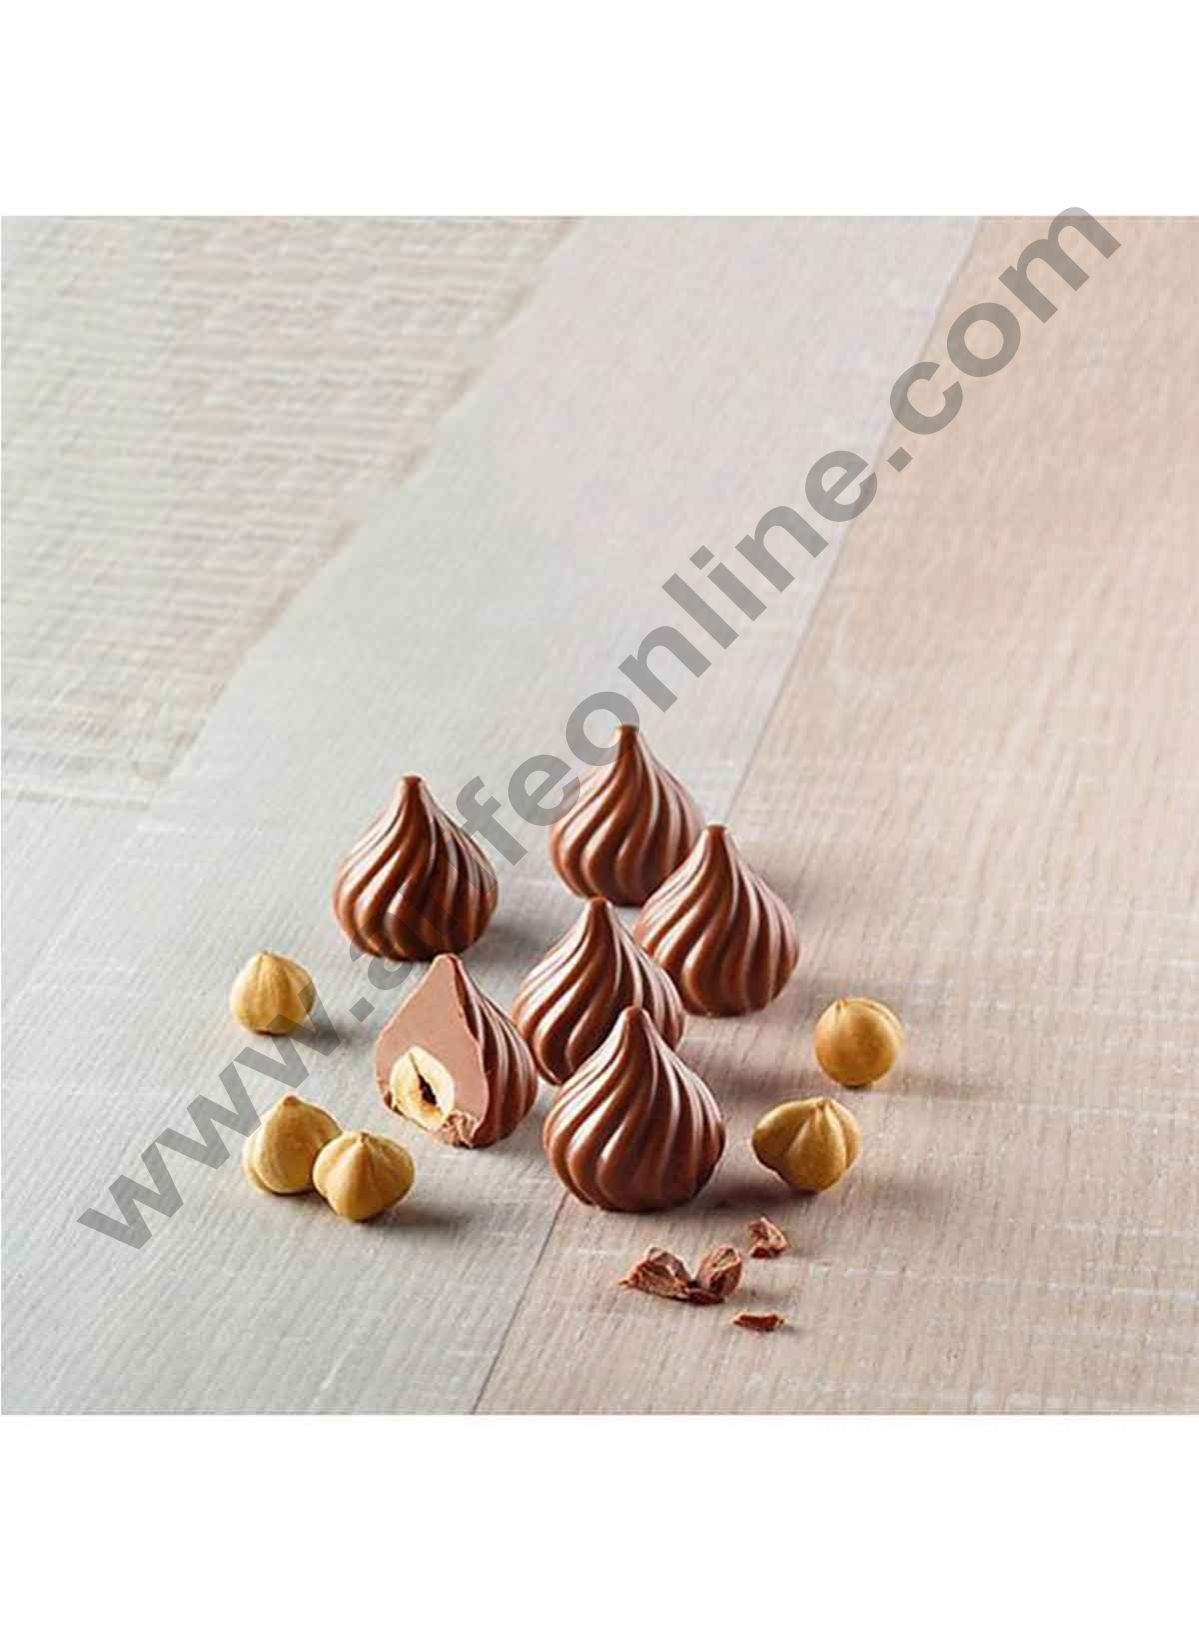 Cake Decor New Mini Modak Shape 15 Cavity Chocolate Mould, Silicone Molds for Chocolate, Chocolate Silicone Moulds, Silicon Brown Chocolate Moulds for Ganesh Chaturti Festivals